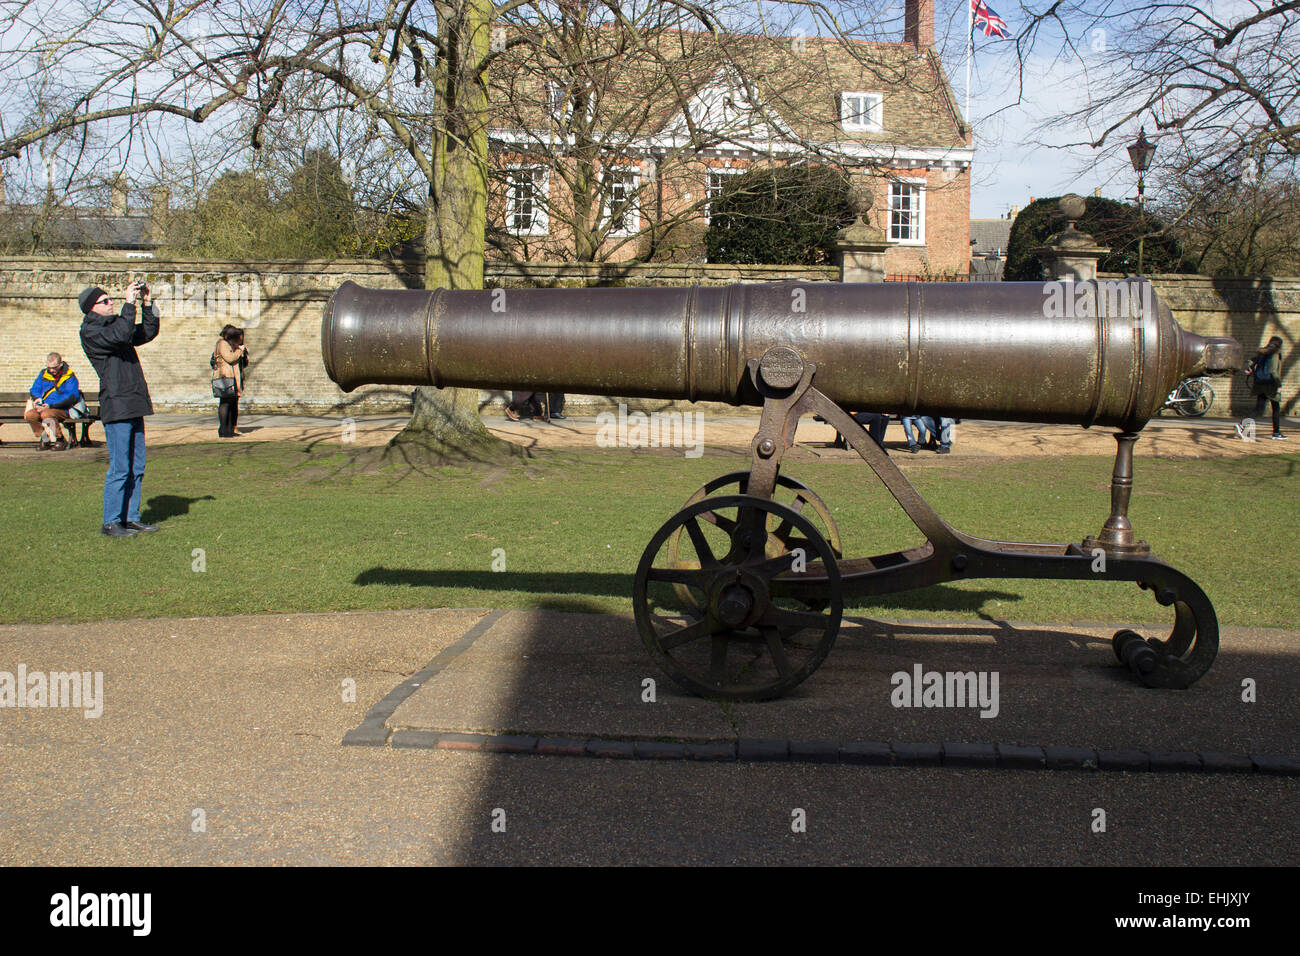 Ely captured Russian Canon at Ely Cathedral, given by Queen Victoria in 1860 after the Crimean War - Stock Image